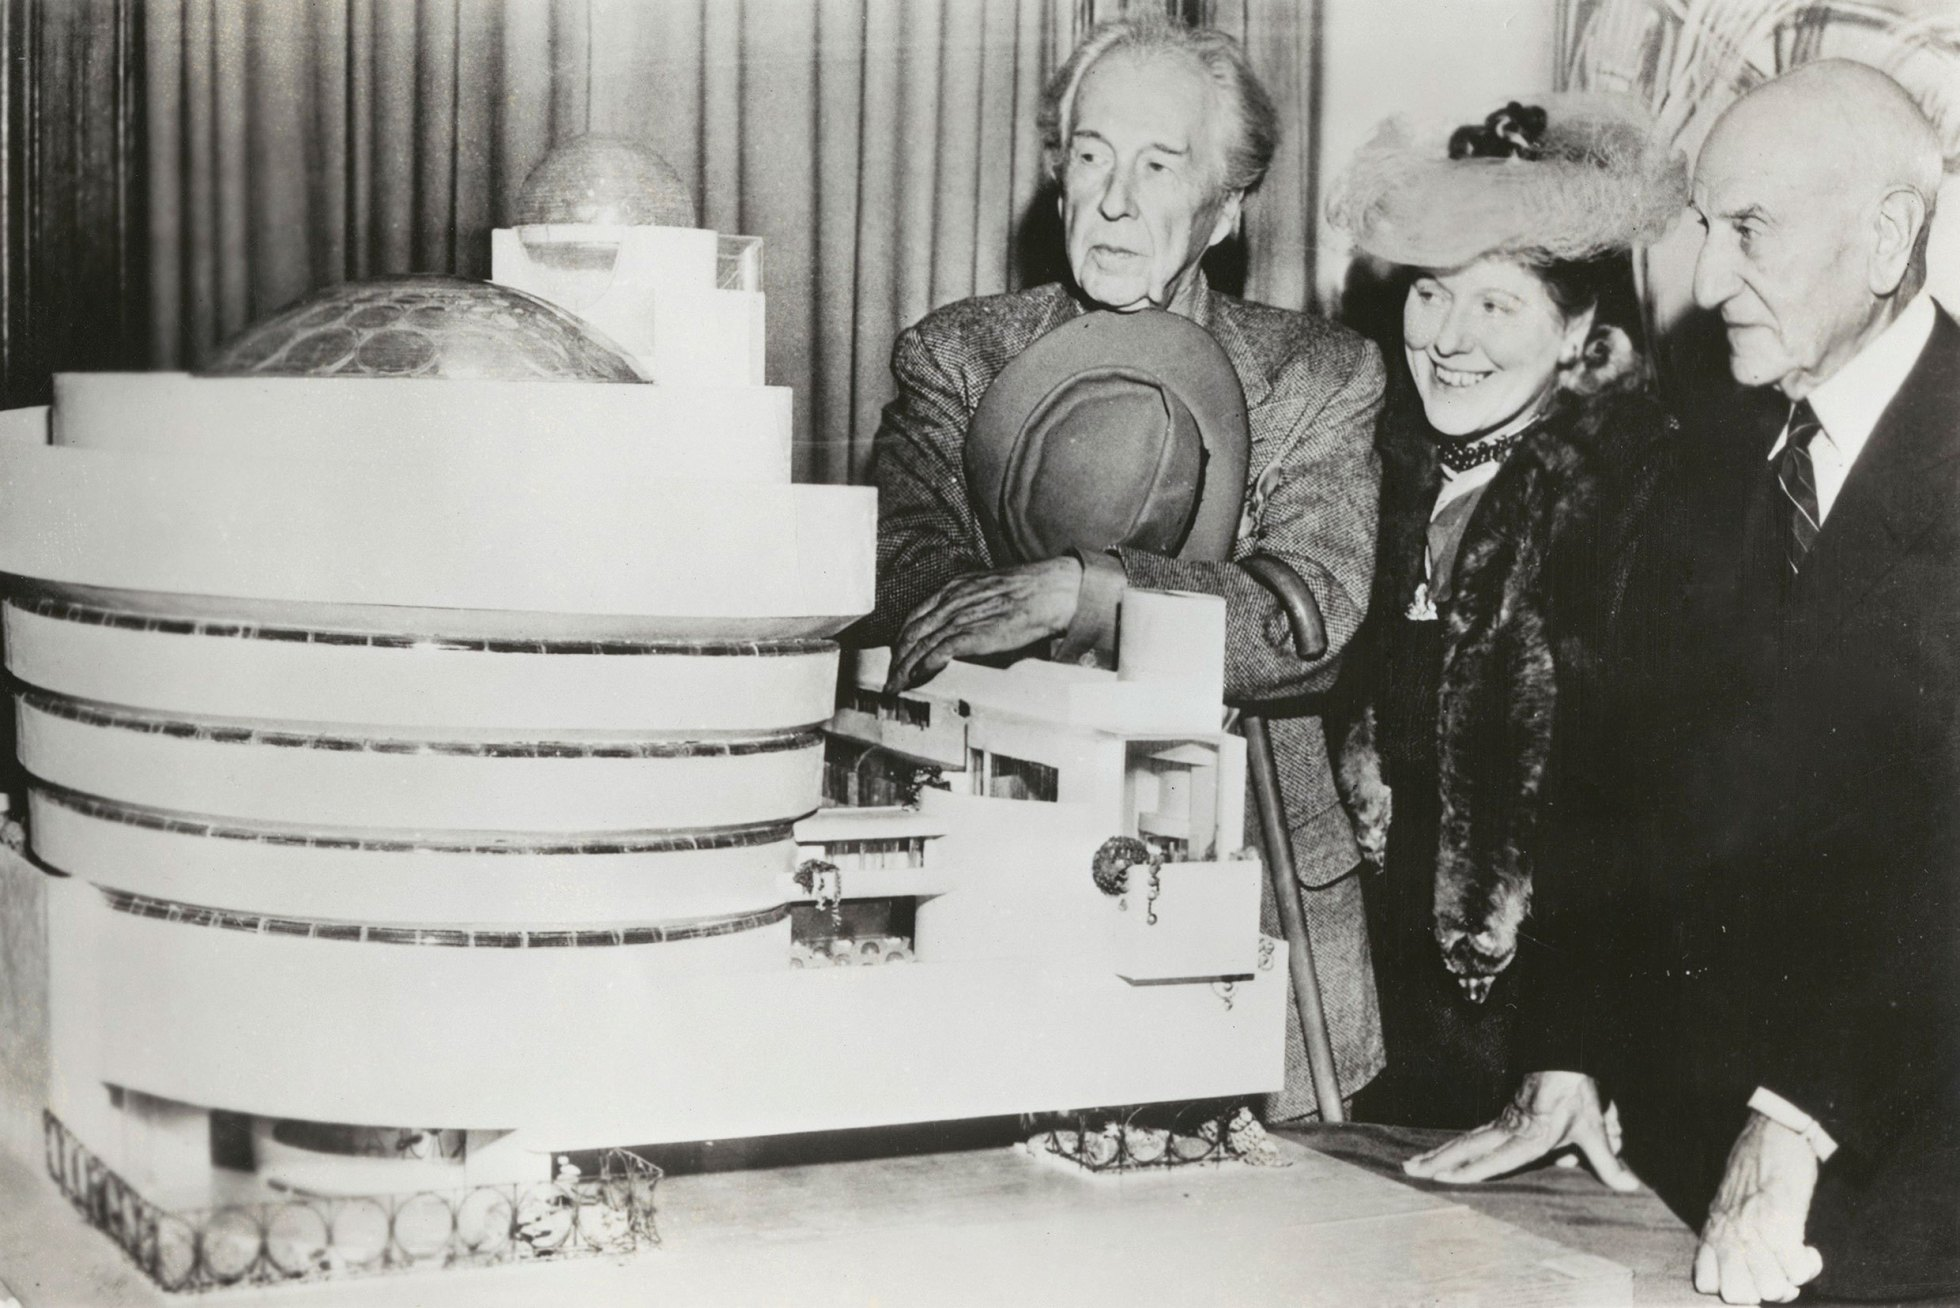 弗兰克·劳埃德·赖特, Hilla Rebay, and Solomon R. Guggenheim standing beside the 1945 model of the Guggenheim Museum. © SRGF Archives, New York. Photo: Margaret Carson